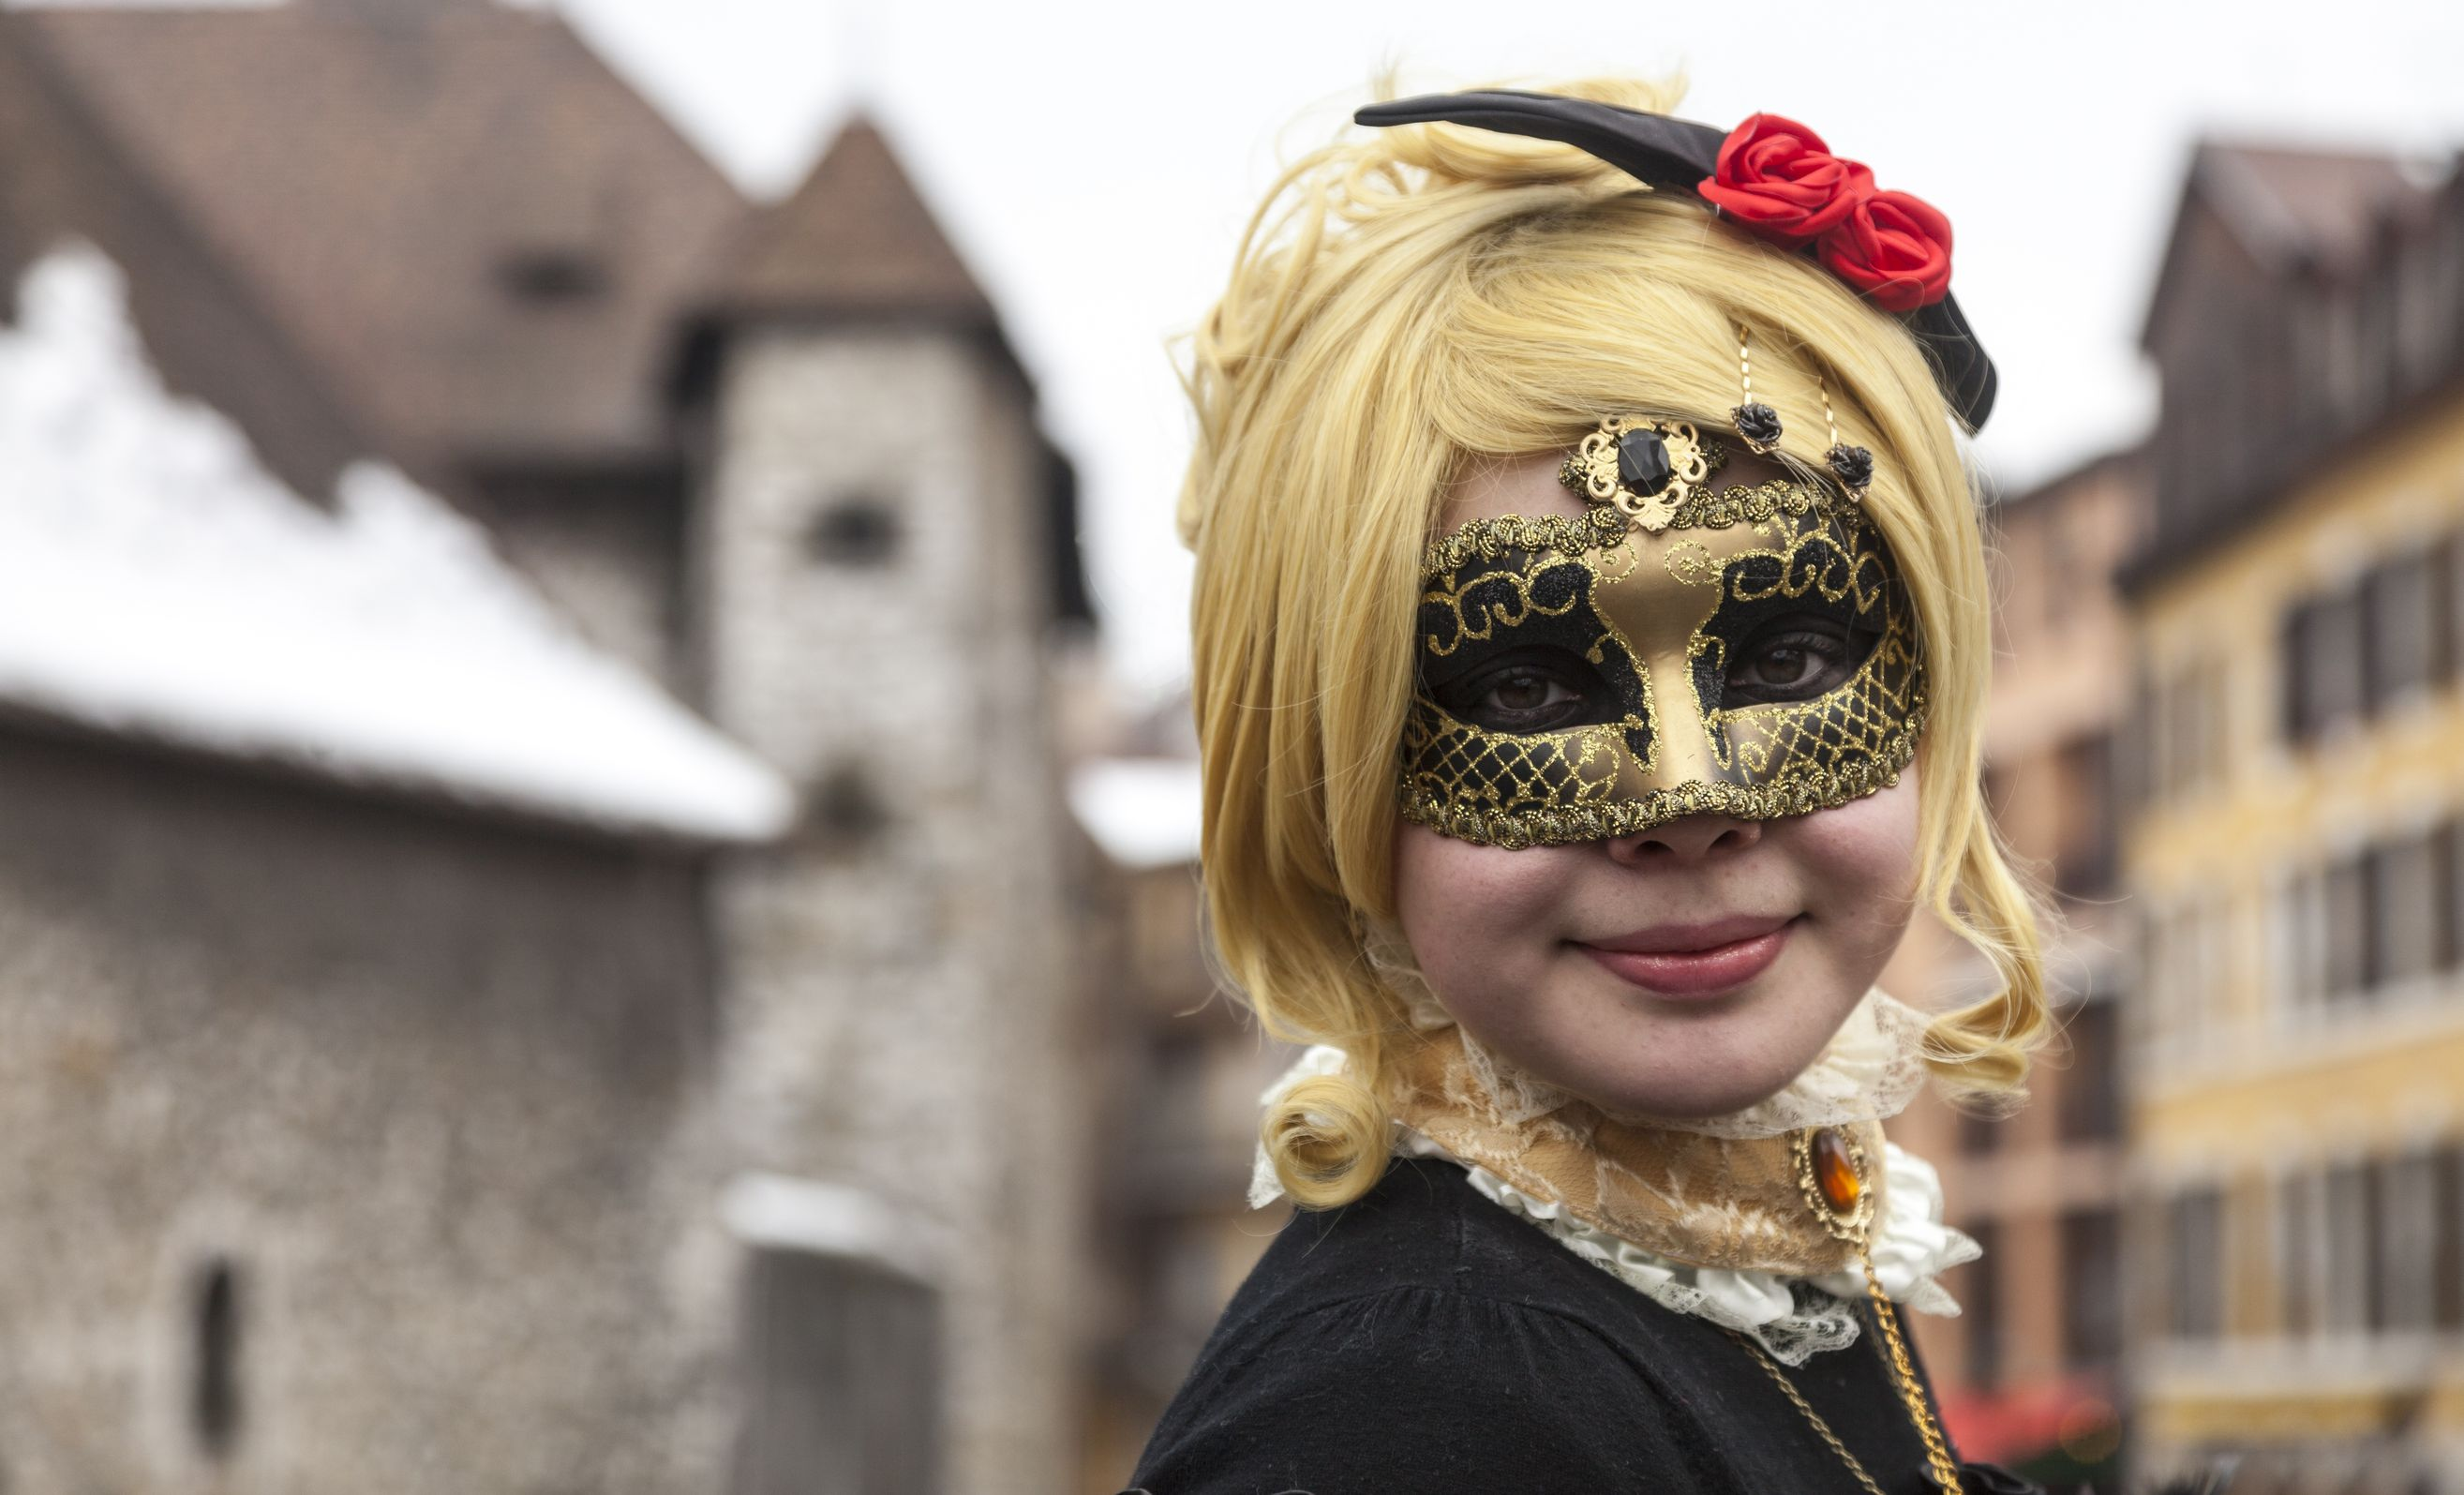 18321492 - annecy, france, february 23, 2013: environmental portrait of a girl in colombina mask posing in front of the palais de l'isle in annecy during a venetian carnival which celebrates the beauty of the real venice.